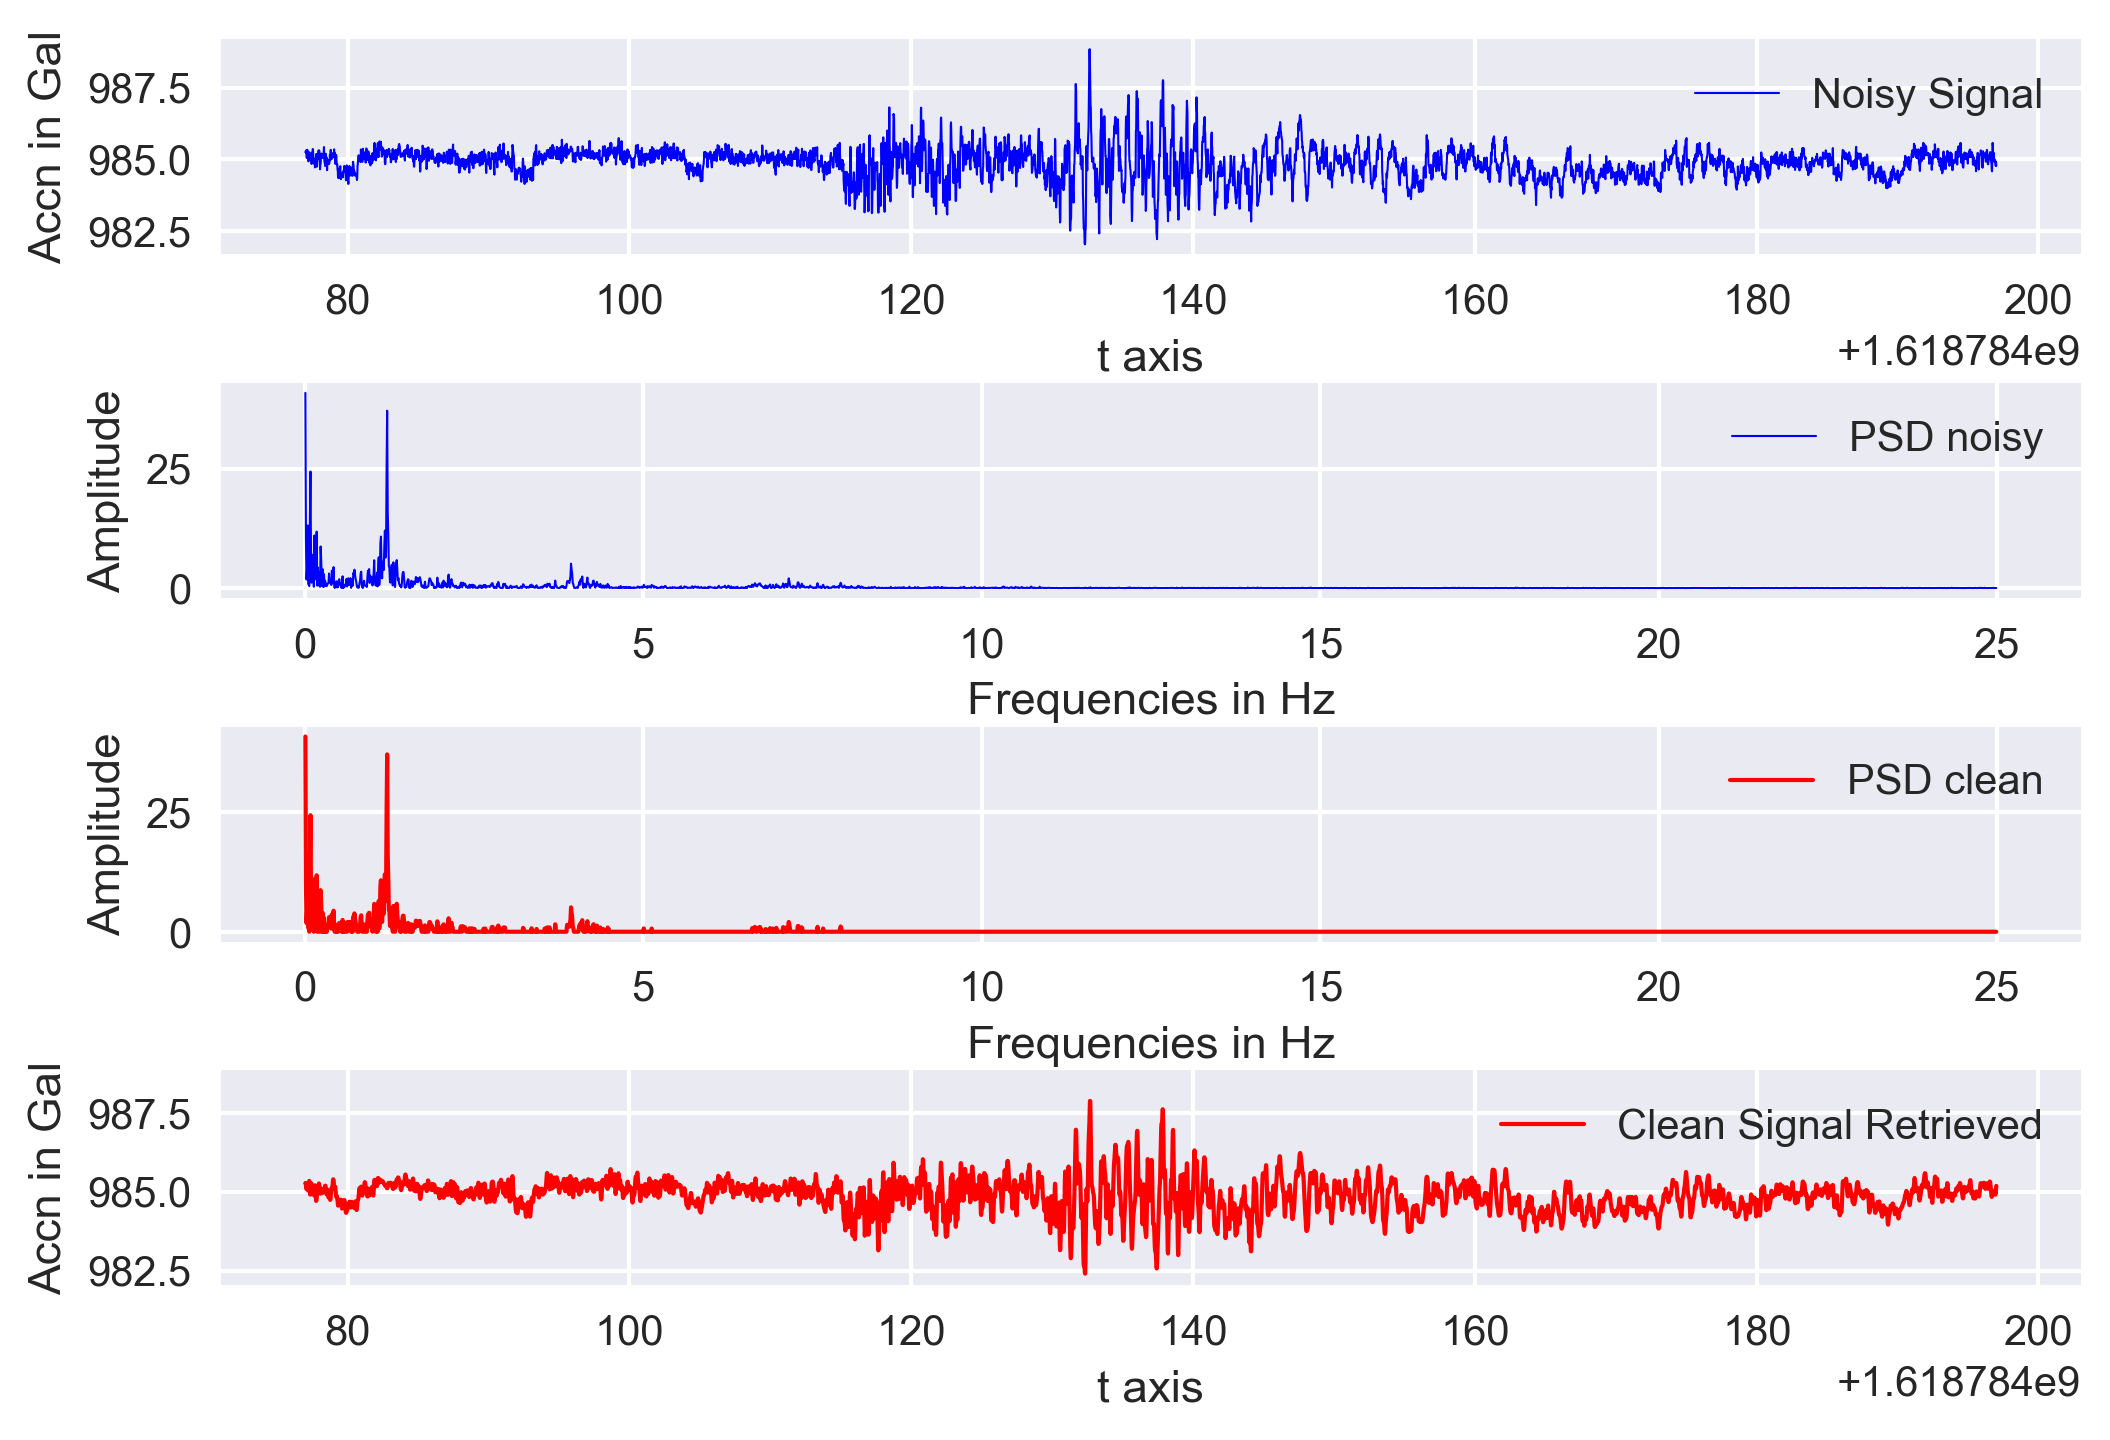 Fast Fourier Transform applied on the real data